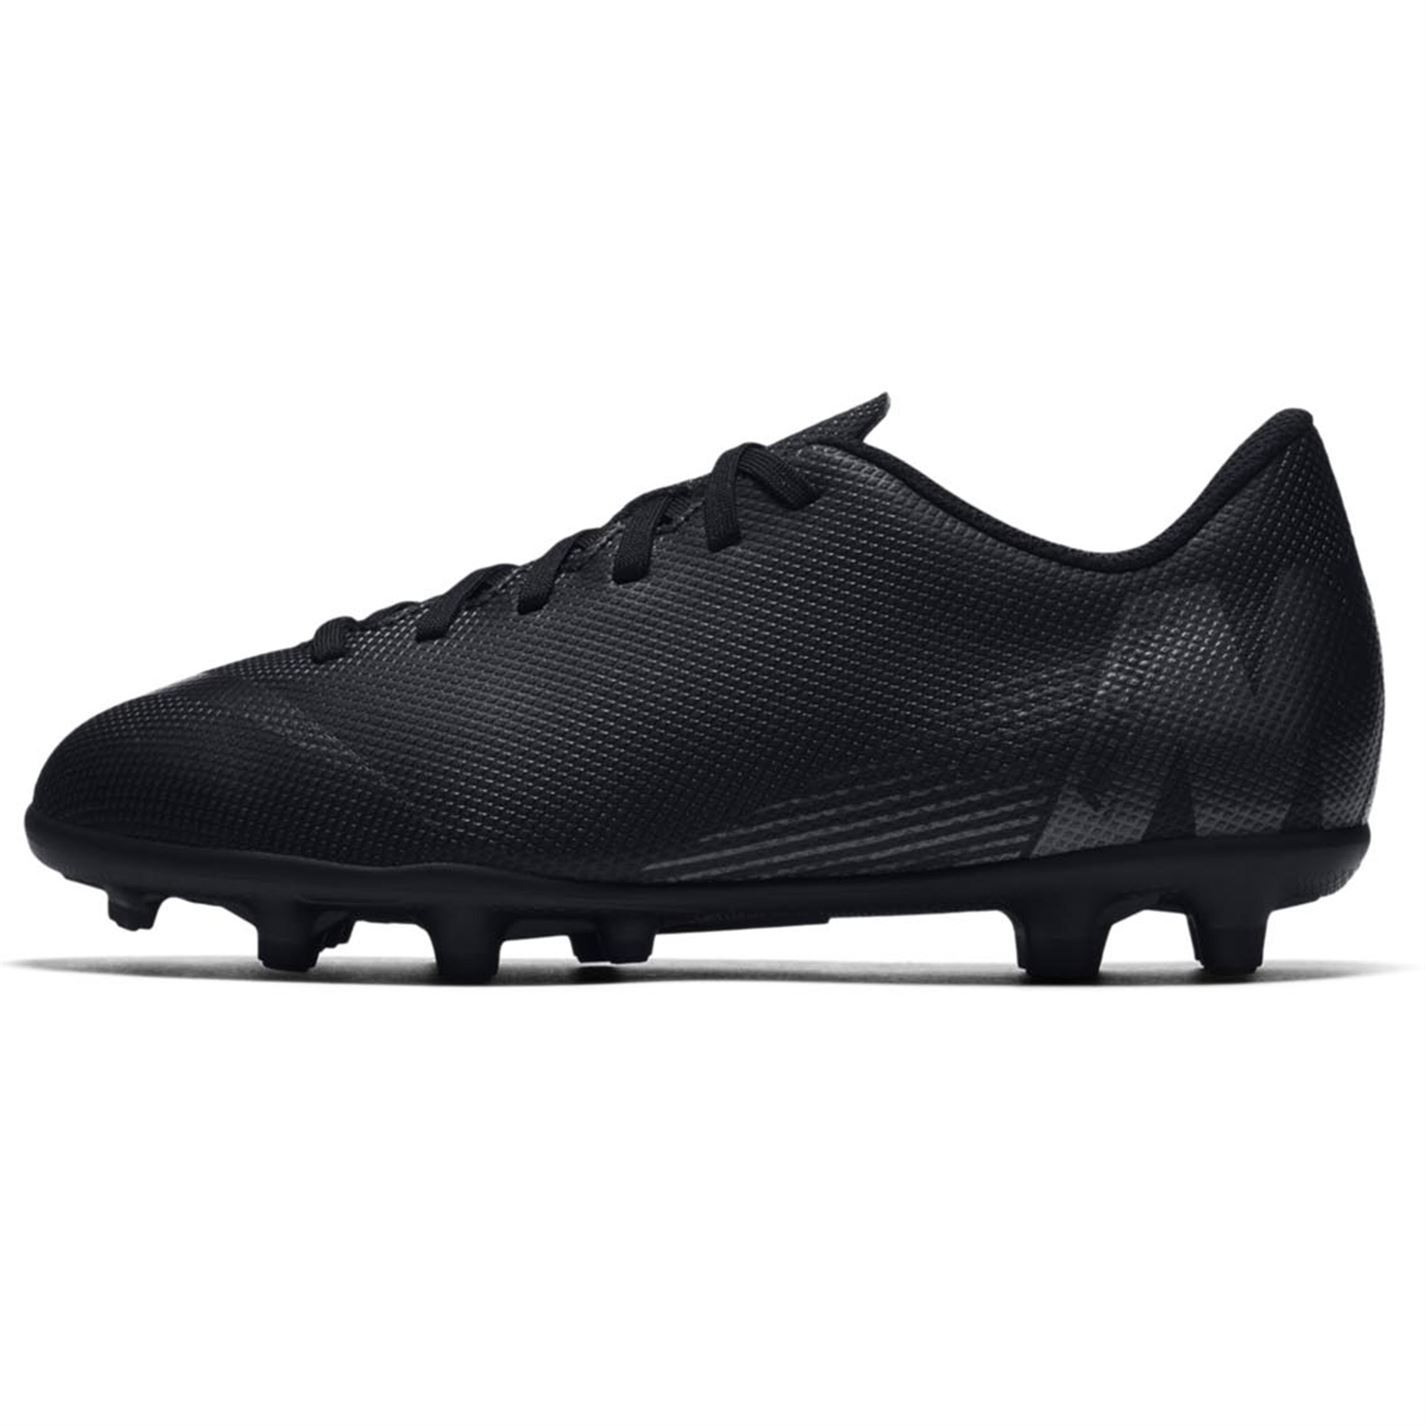 8bee726f1 ... Nike Mercurial Vapor Club FG Firm Ground Football Boots Juniors Soccer  Cleats ...